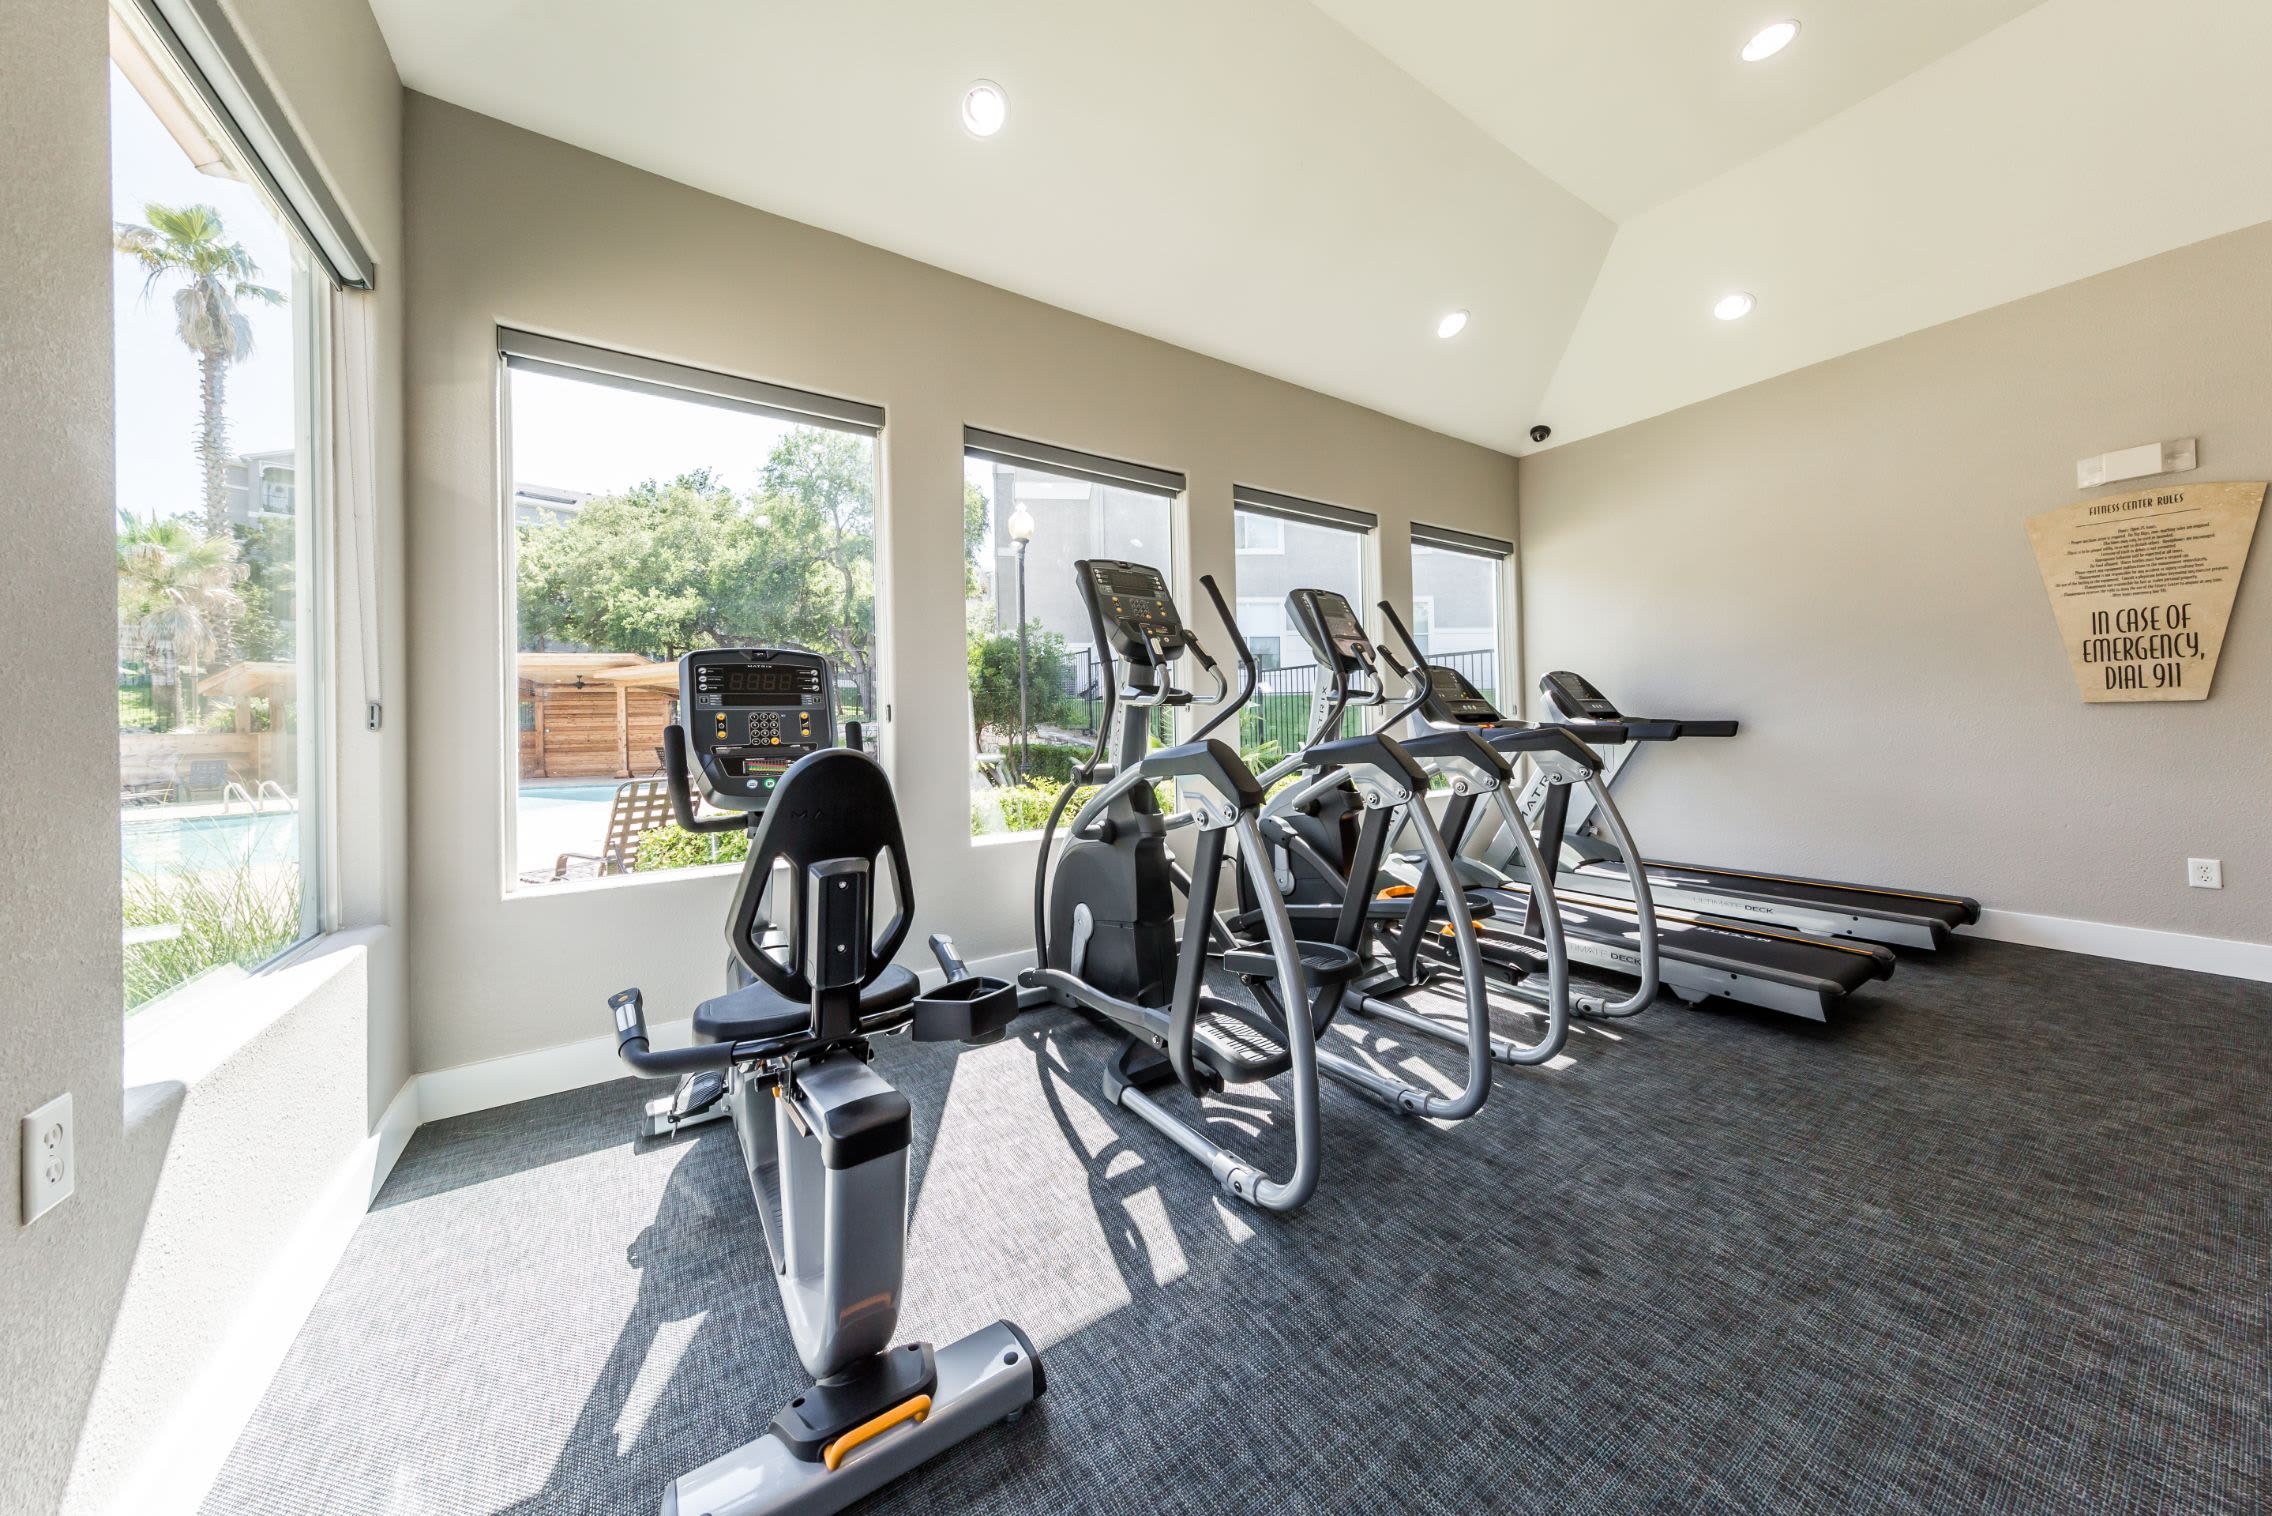 Cardio machines in the fitness center at Marquis at Crown Ridge in San Antonio, Texas